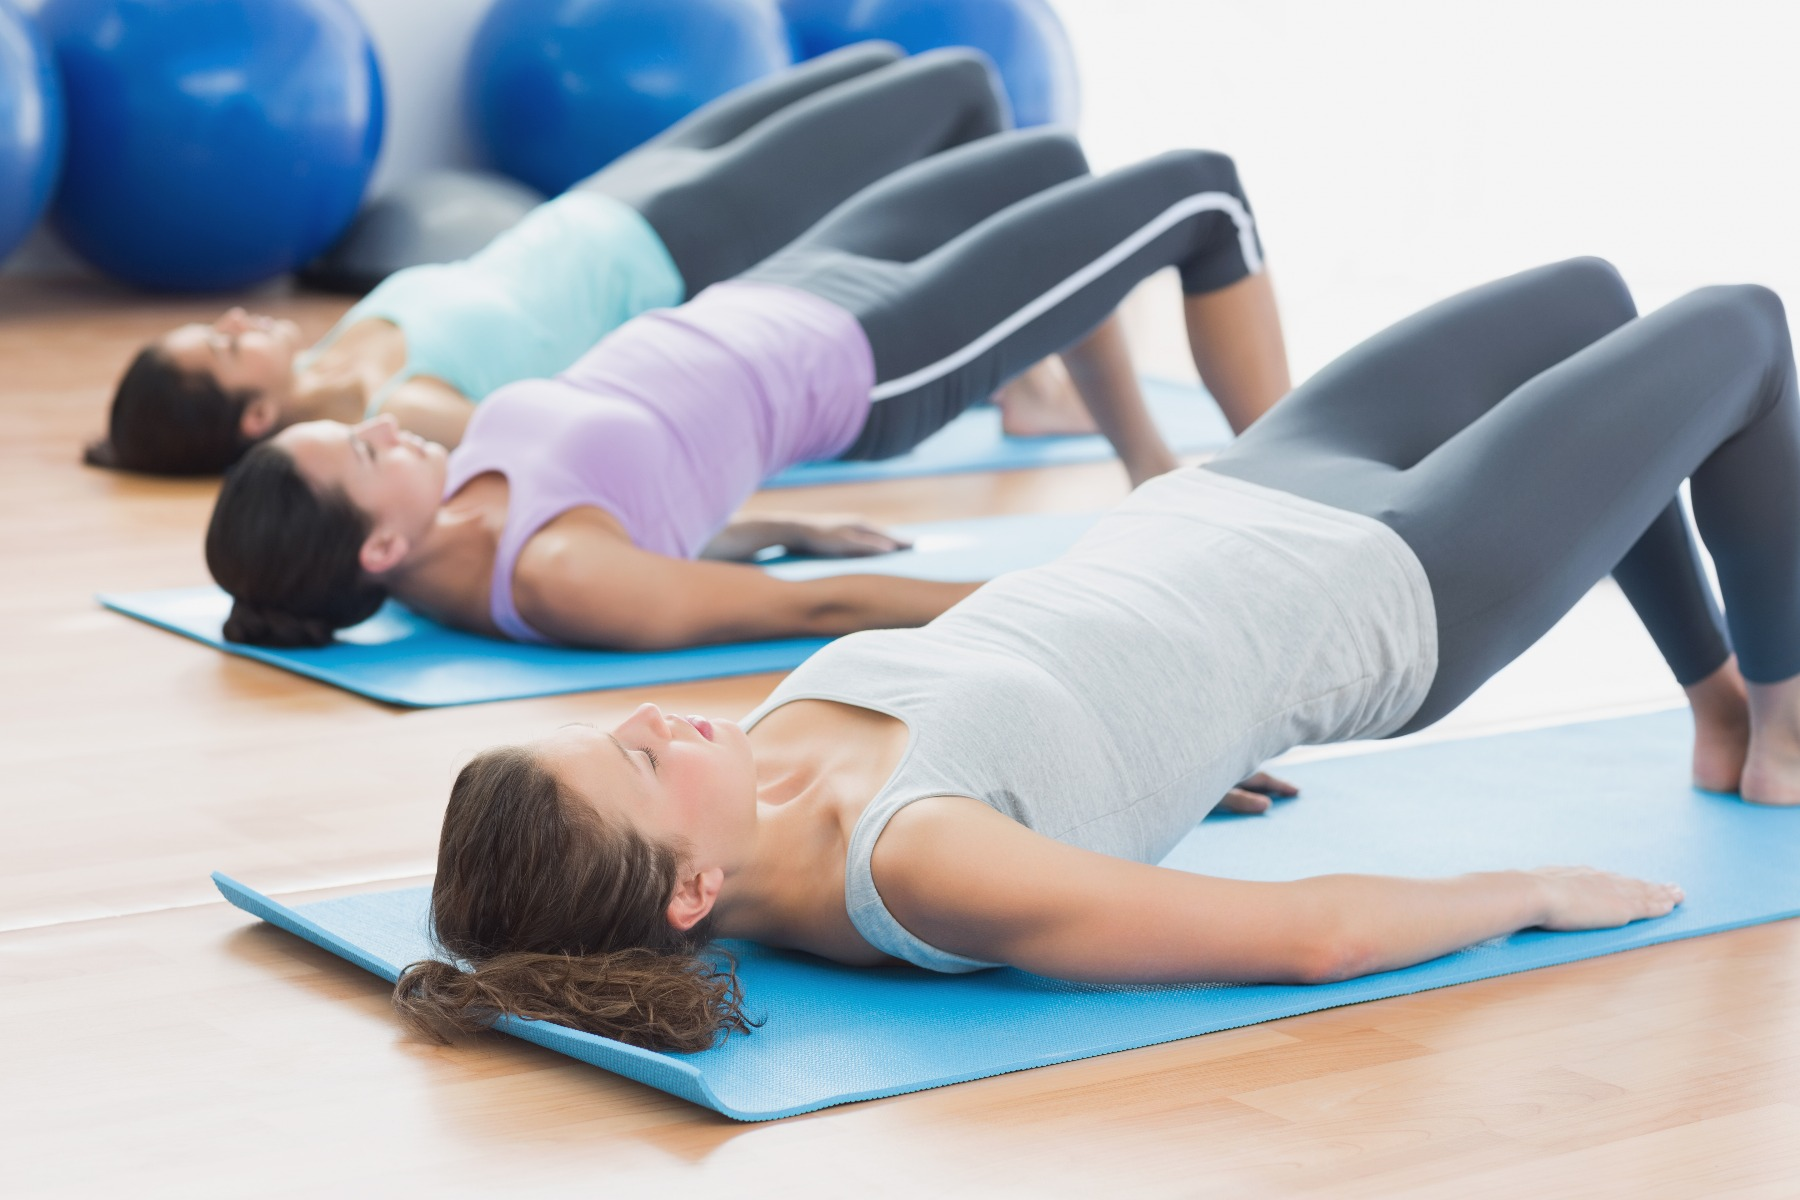 Modern Pilates incorporates deep breathing and pelvic floor contractions. Even though the movements are not designed to specifically strengthen your pelvic floor, you may notice an improvement.